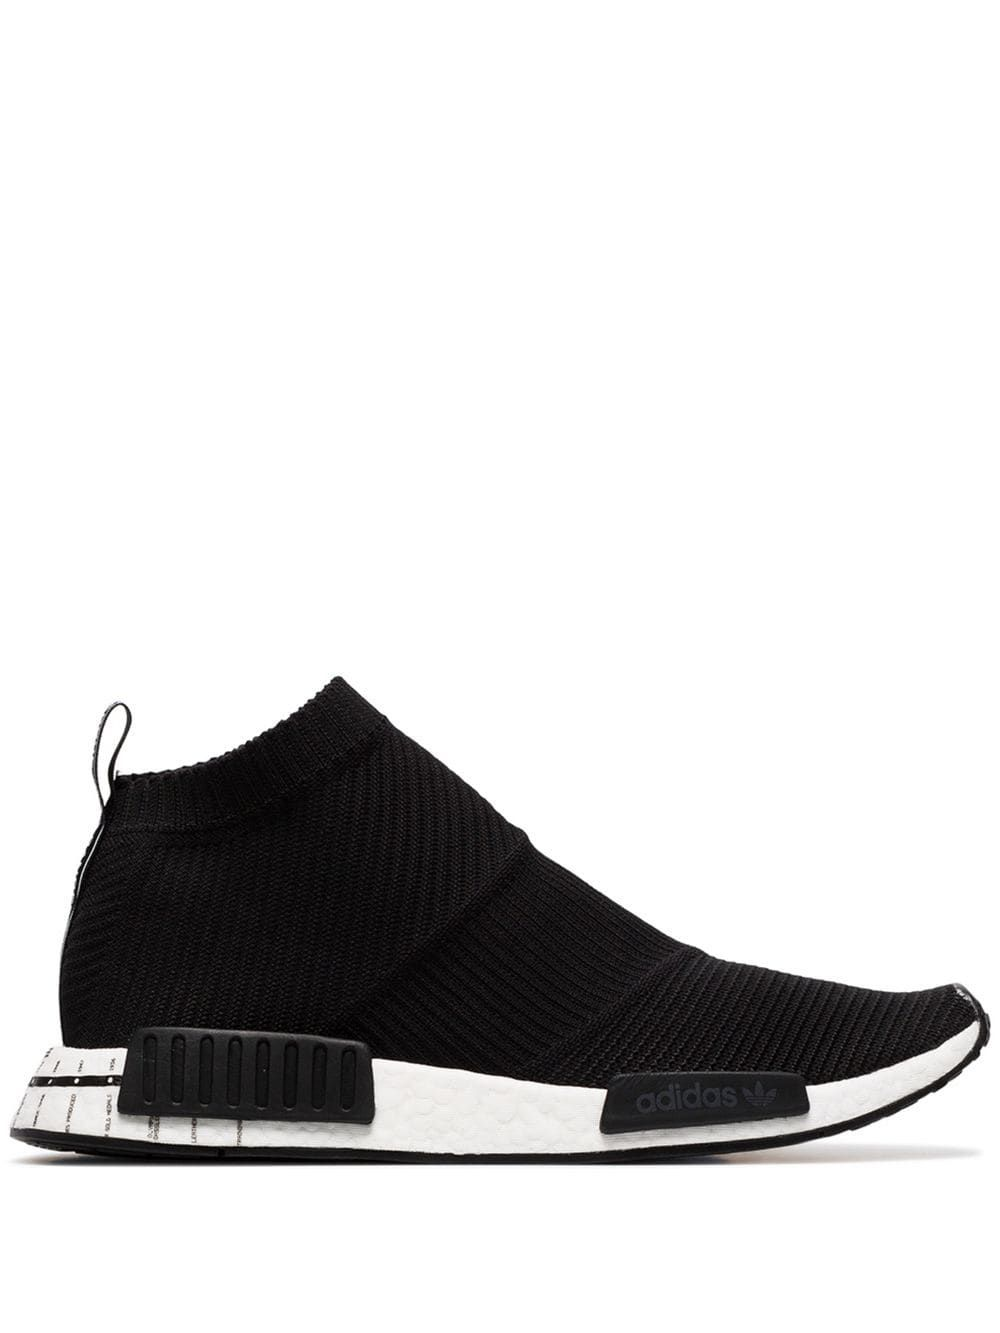 42645e798 ADIDAS ORIGINALS ADIDAS NMD CS1 SNEAKERS - BLACK.  adidasoriginals  shoes